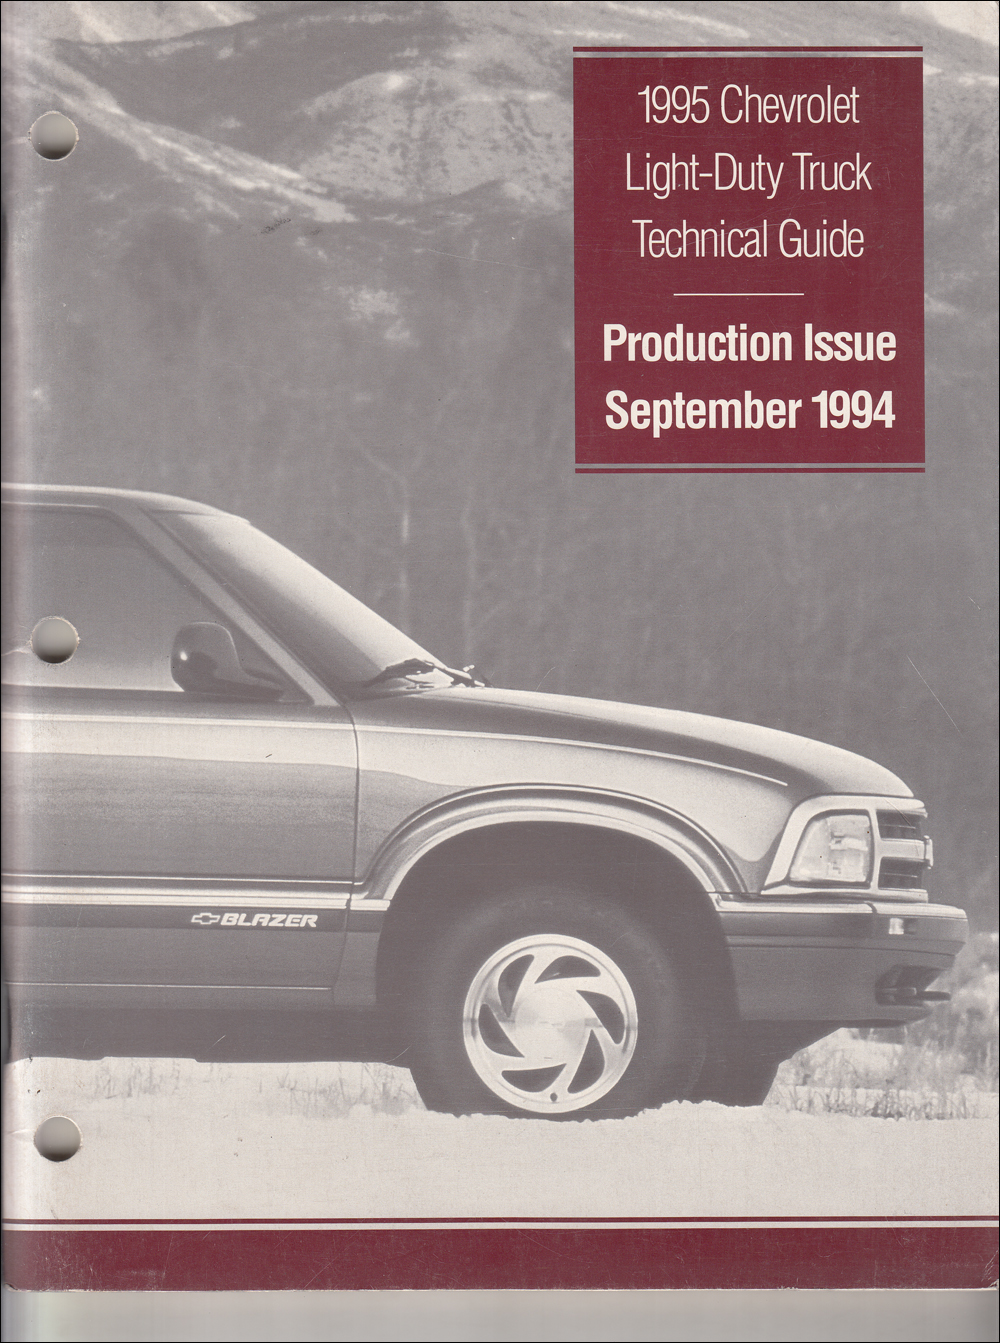 1995 Chevrolet Truck Technical Guide Dealer Album Original Production